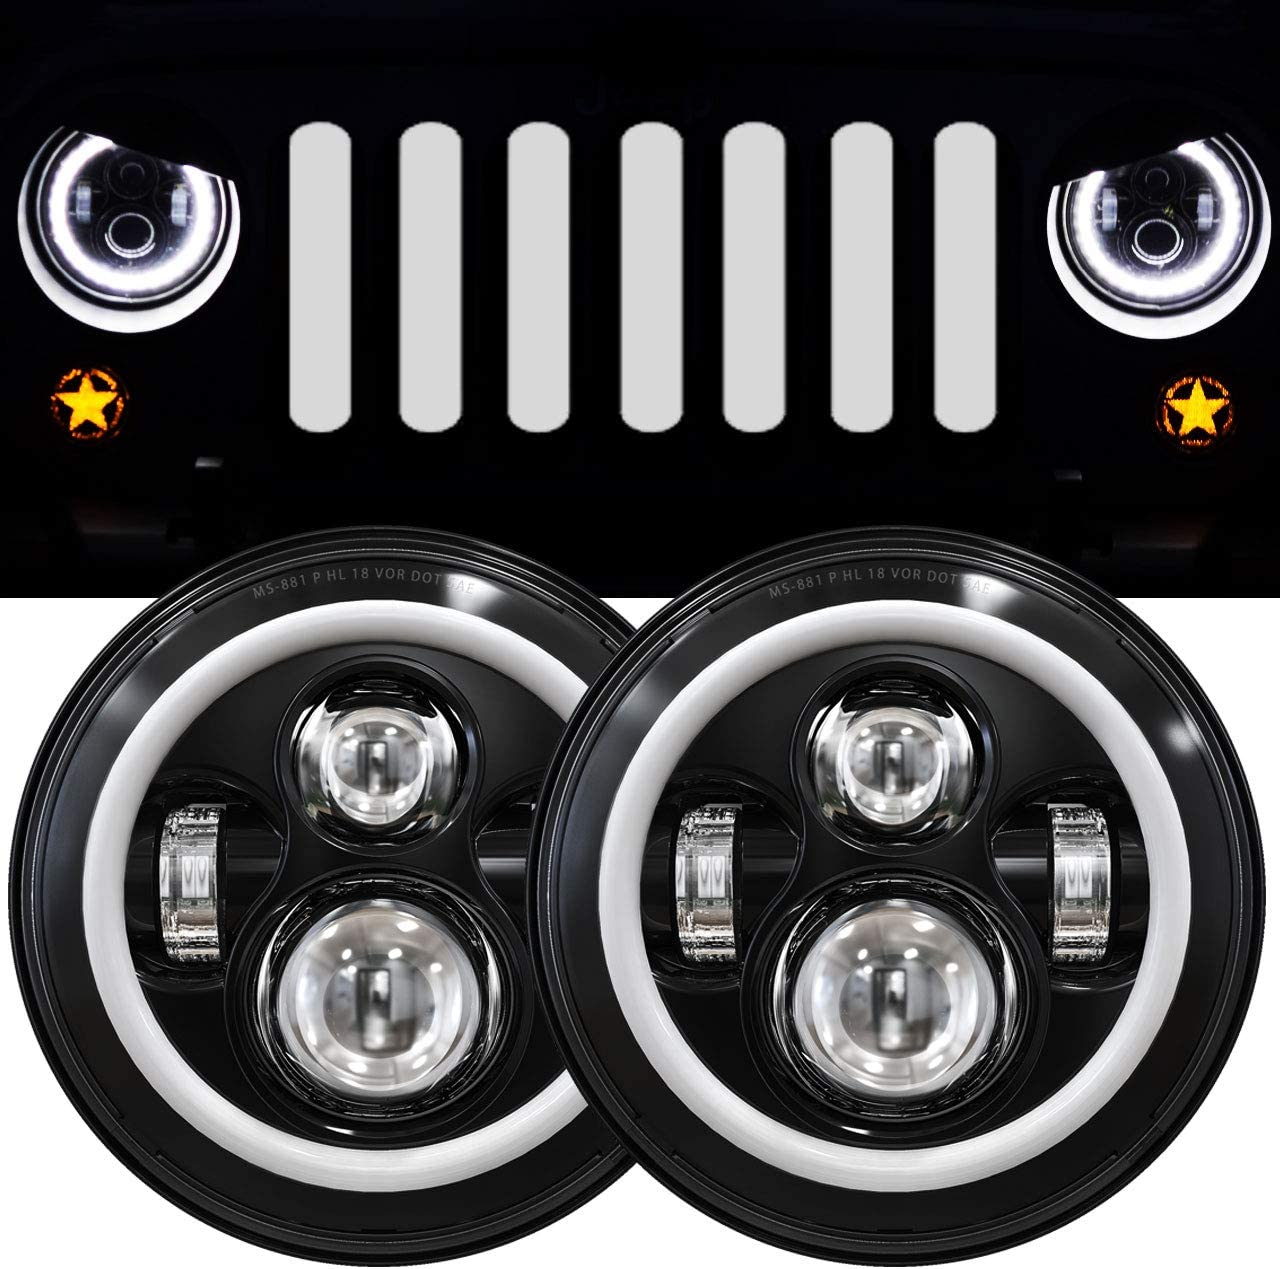 7 Inch LED Halo Headlights with Turn Signal Amber White DRL for H6024 2007-2017 Jeep Wrangler JK JKU Headlamp Replacement-1 Pair Black